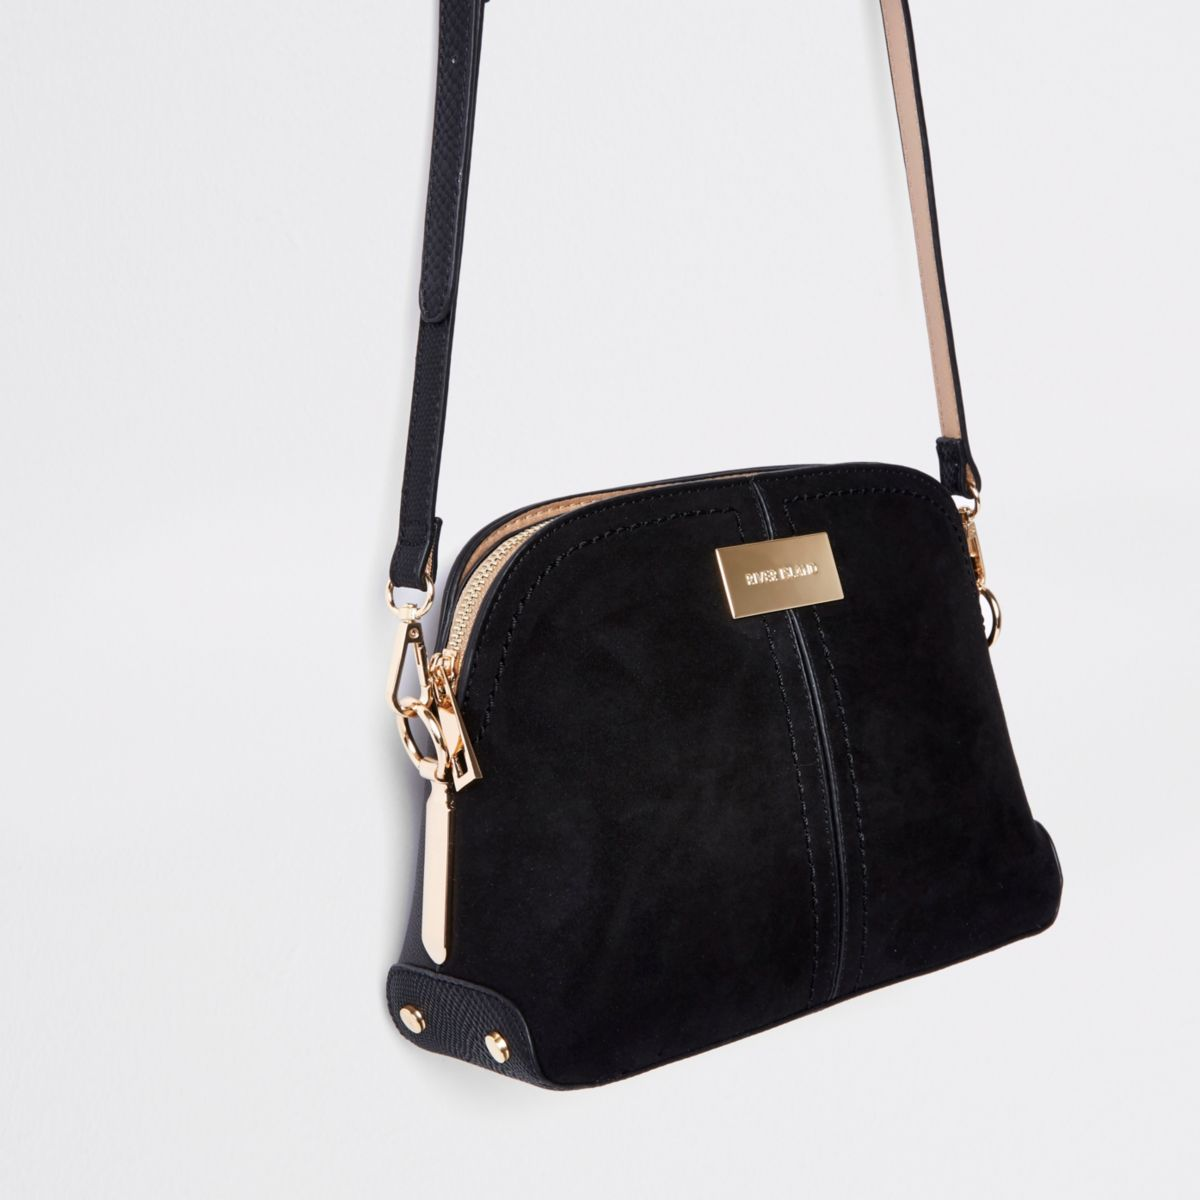 Black kettle cross body bag